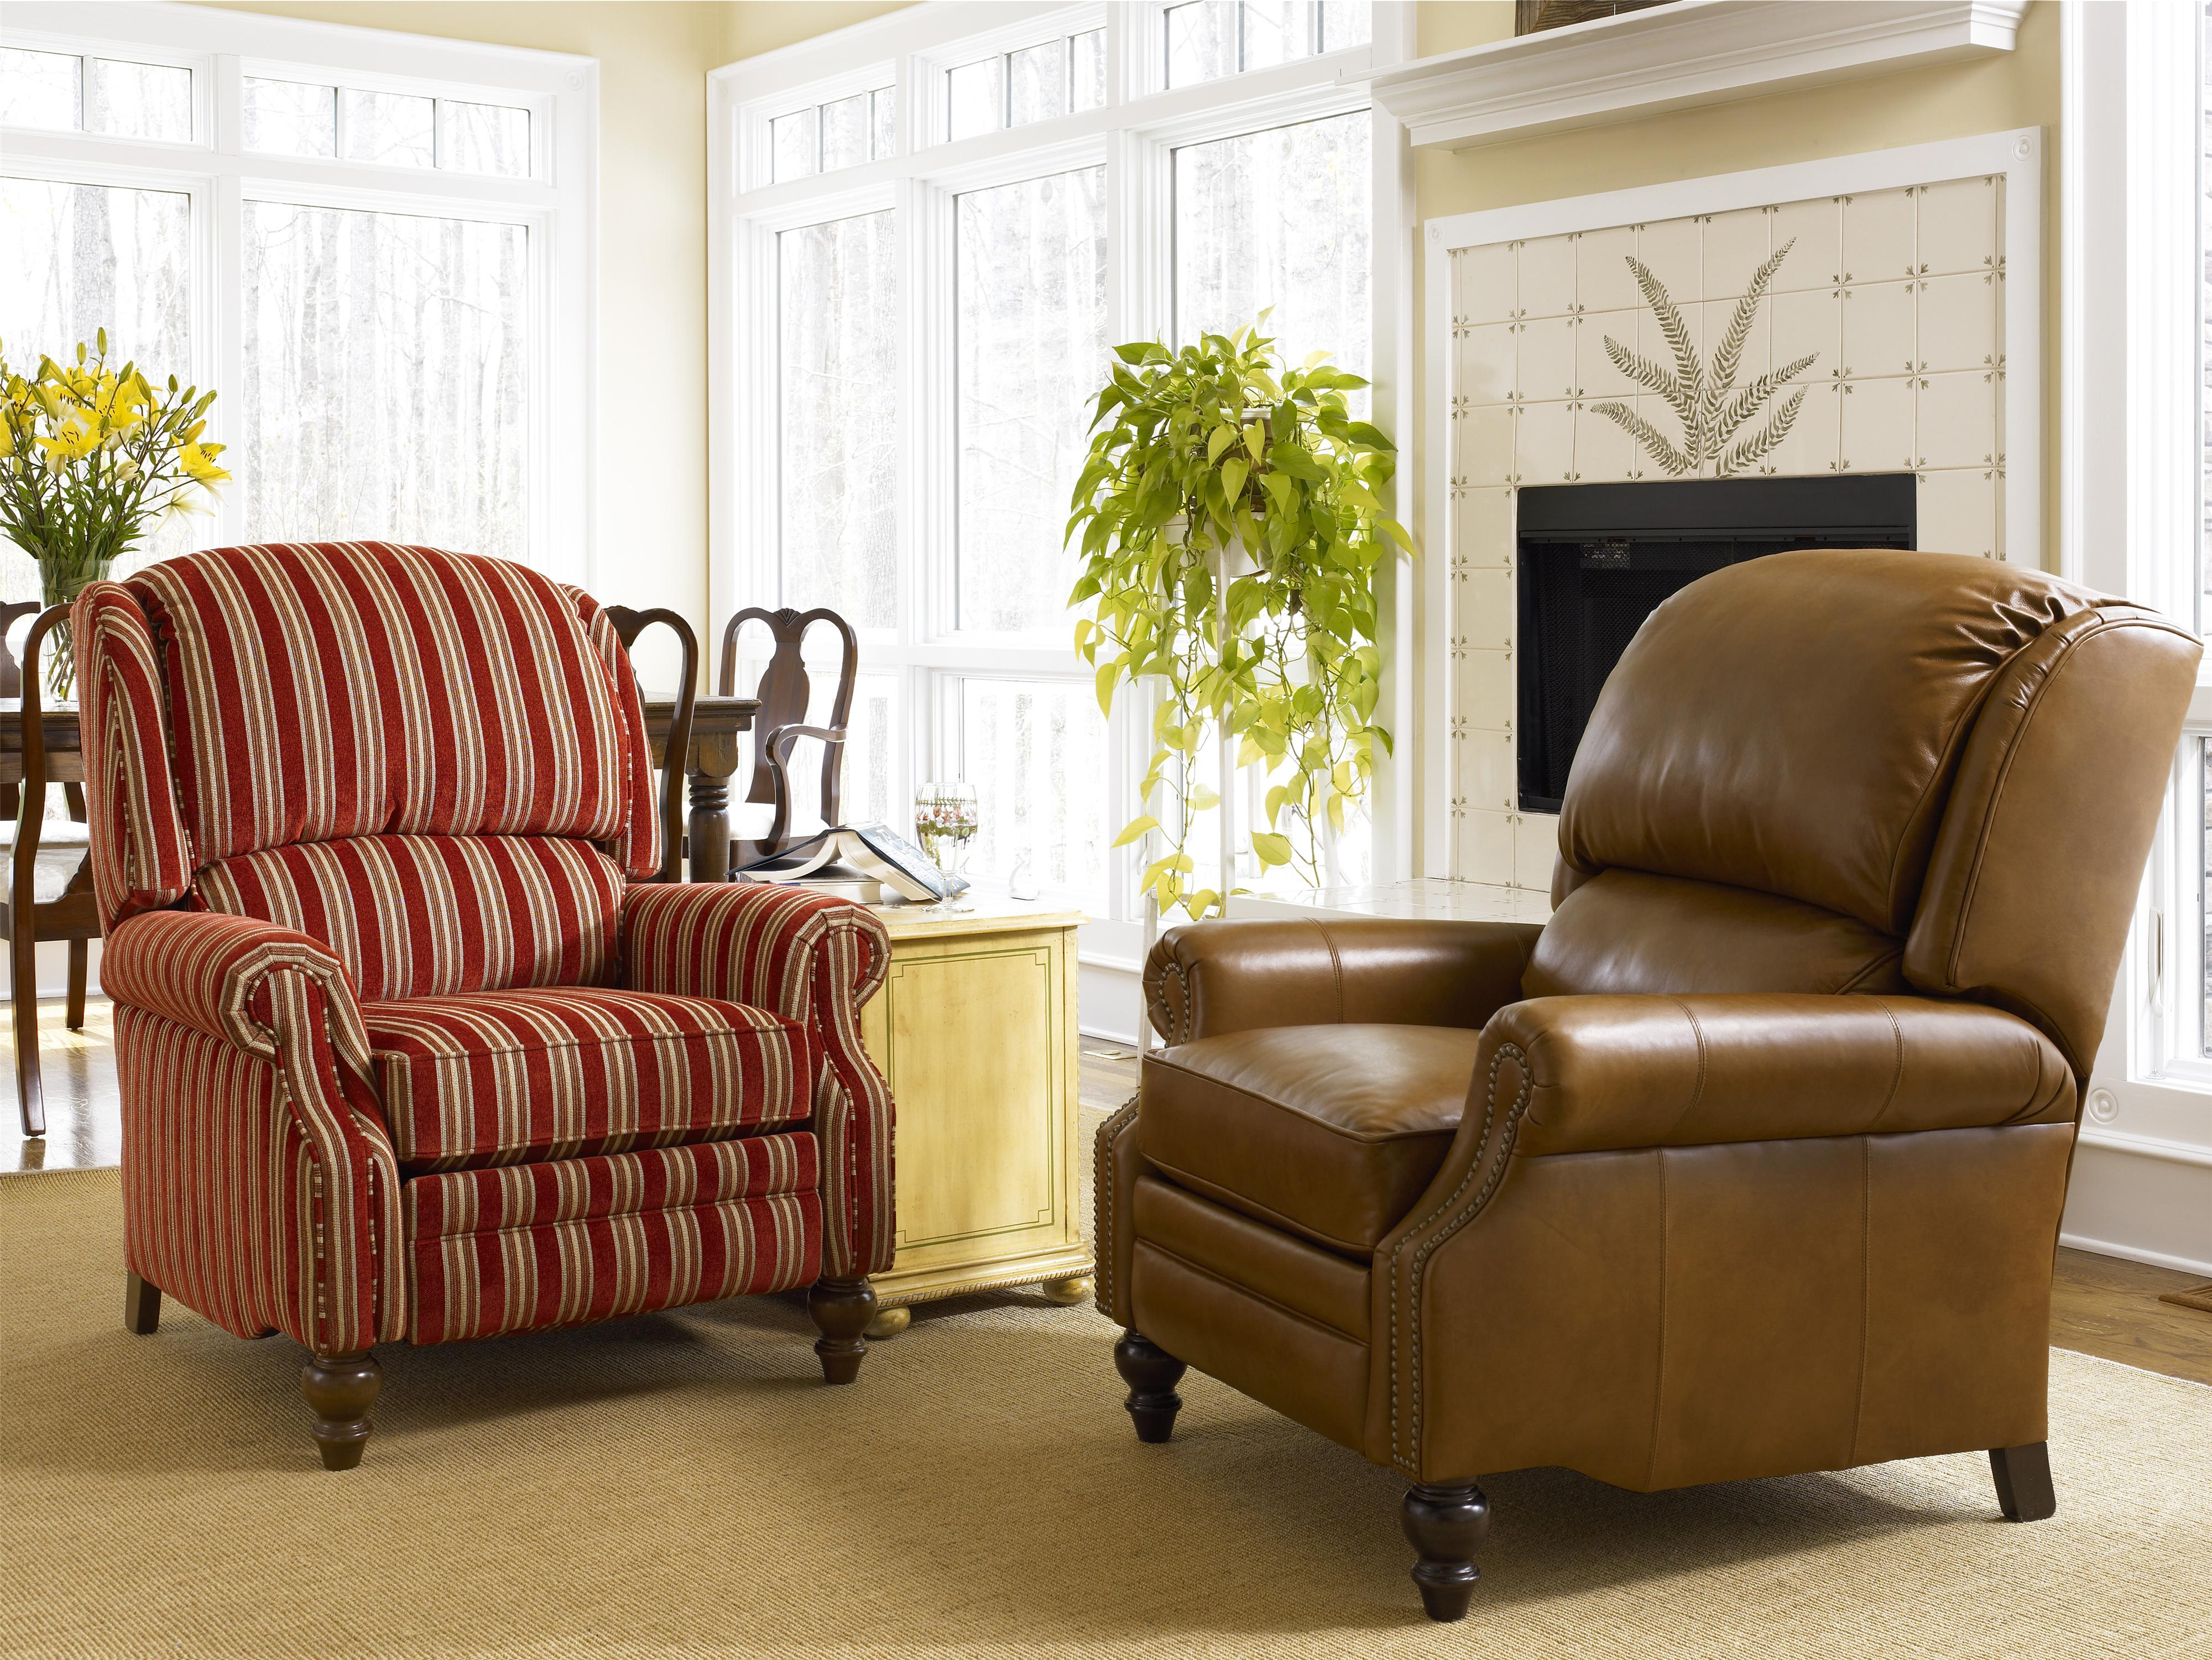 705l Pressback Reclining Chair With Rolled Arms By Smith